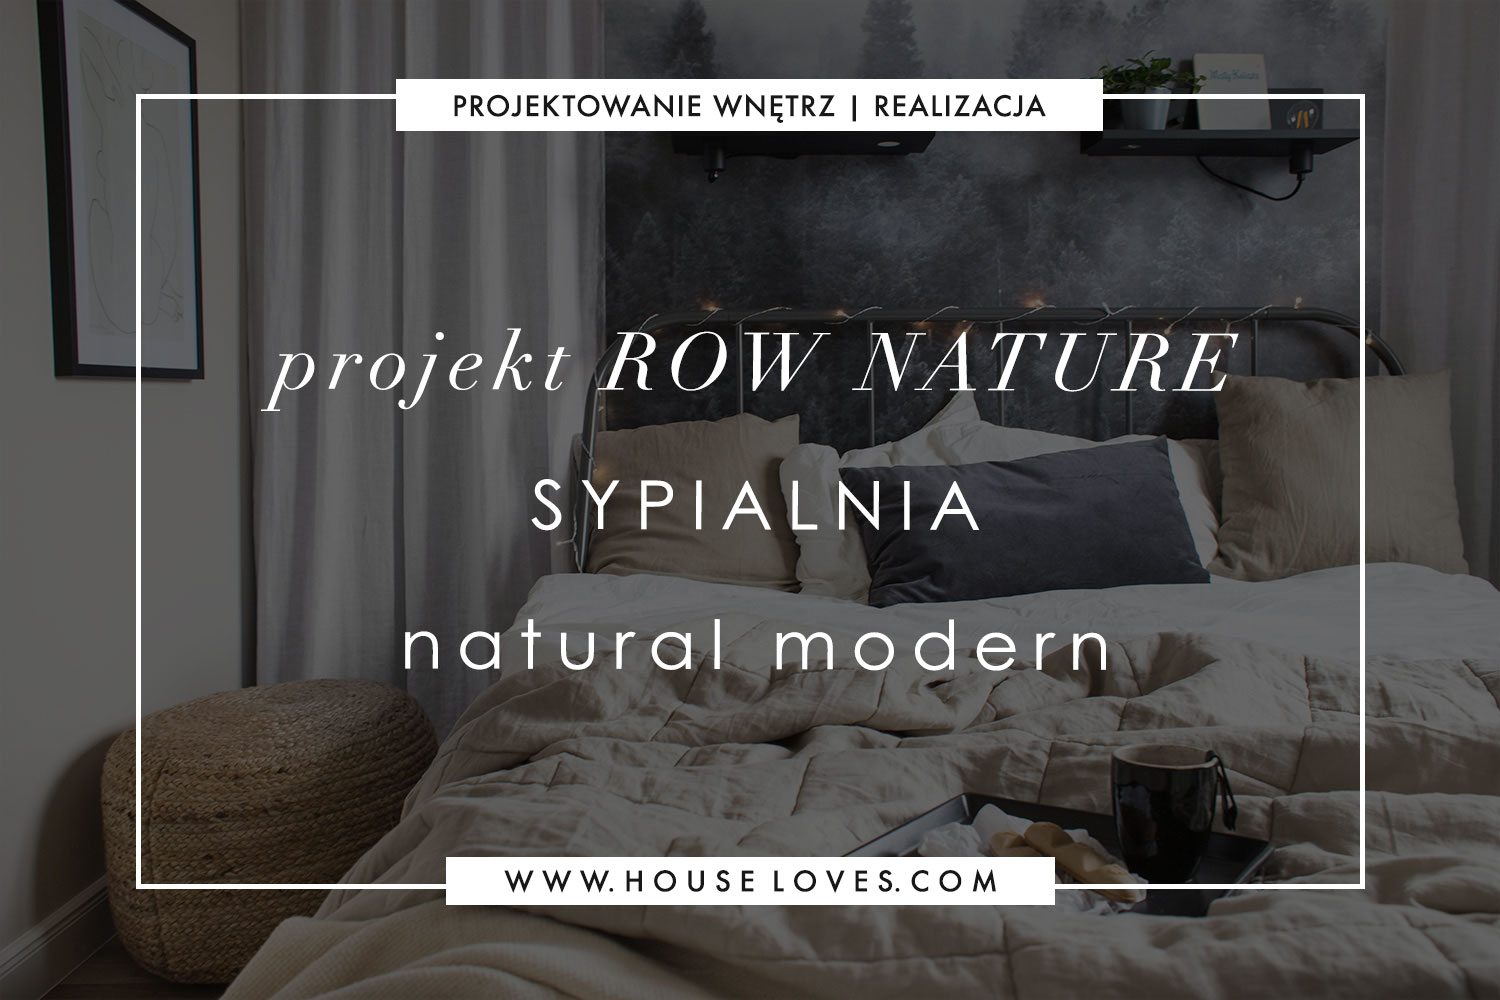 projekt-ROW-NATURE-sypialnia-natural-modern.jpg